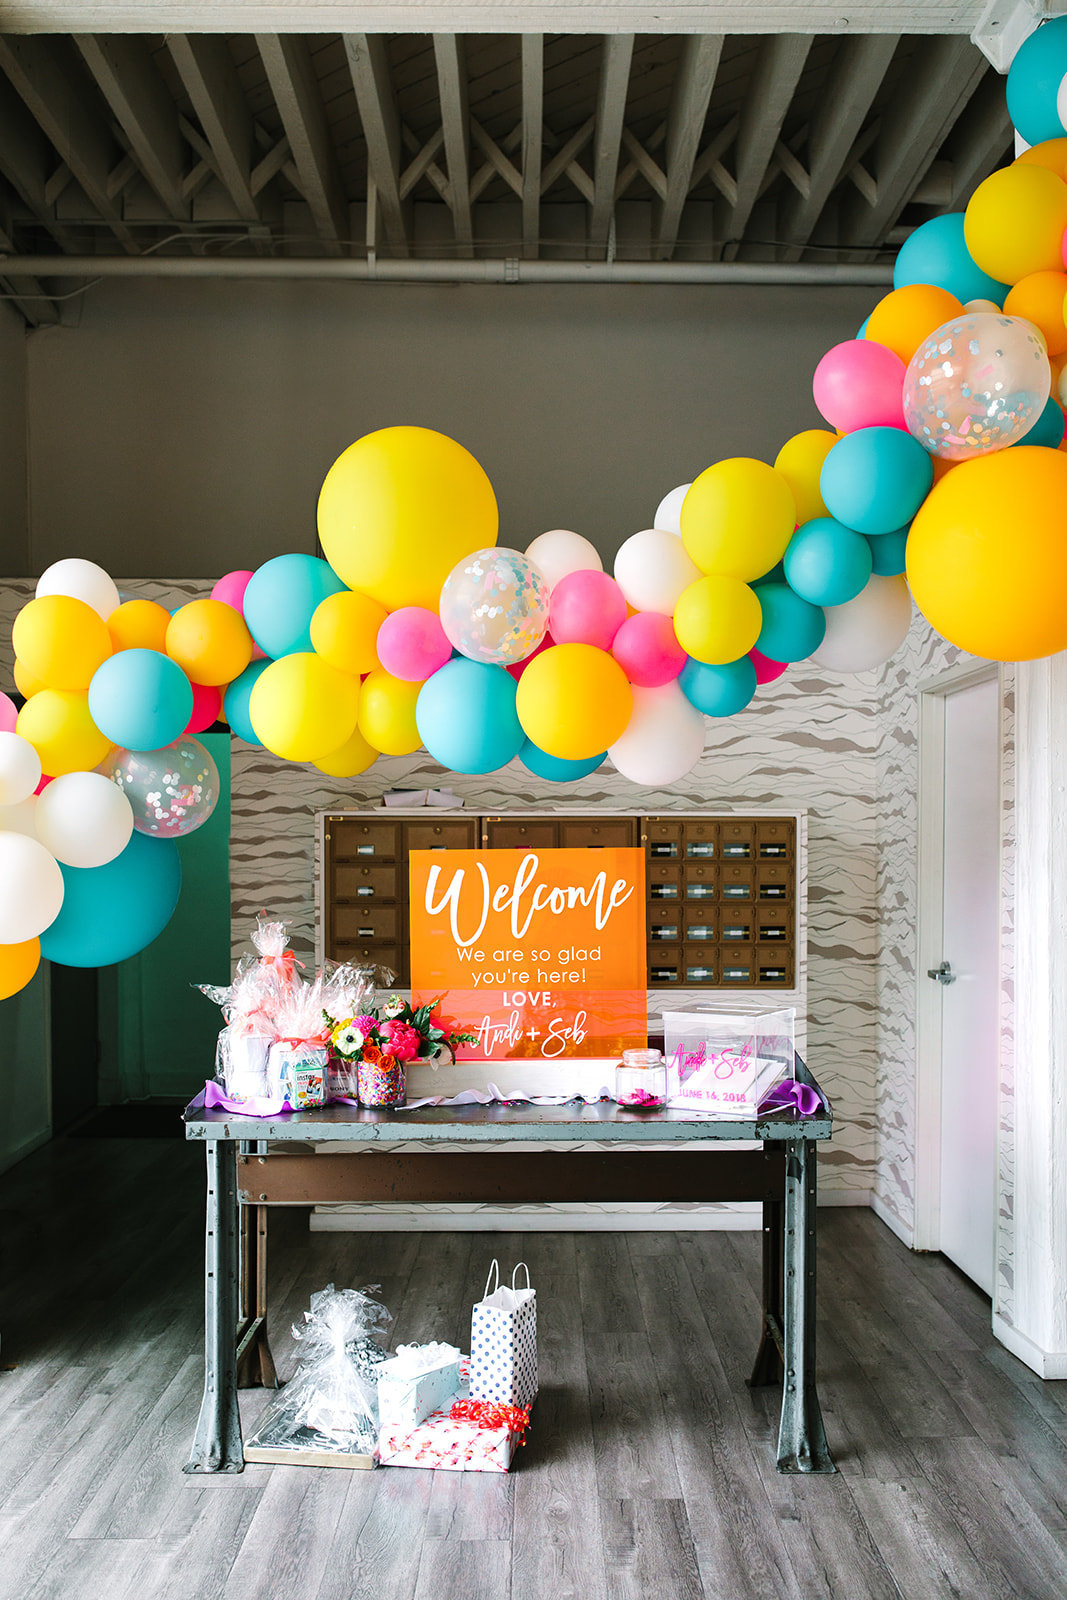 Wedding welcome table with neon wedding sign and colorful ballon garland at The Unique Space LA in downtown Los Angeles